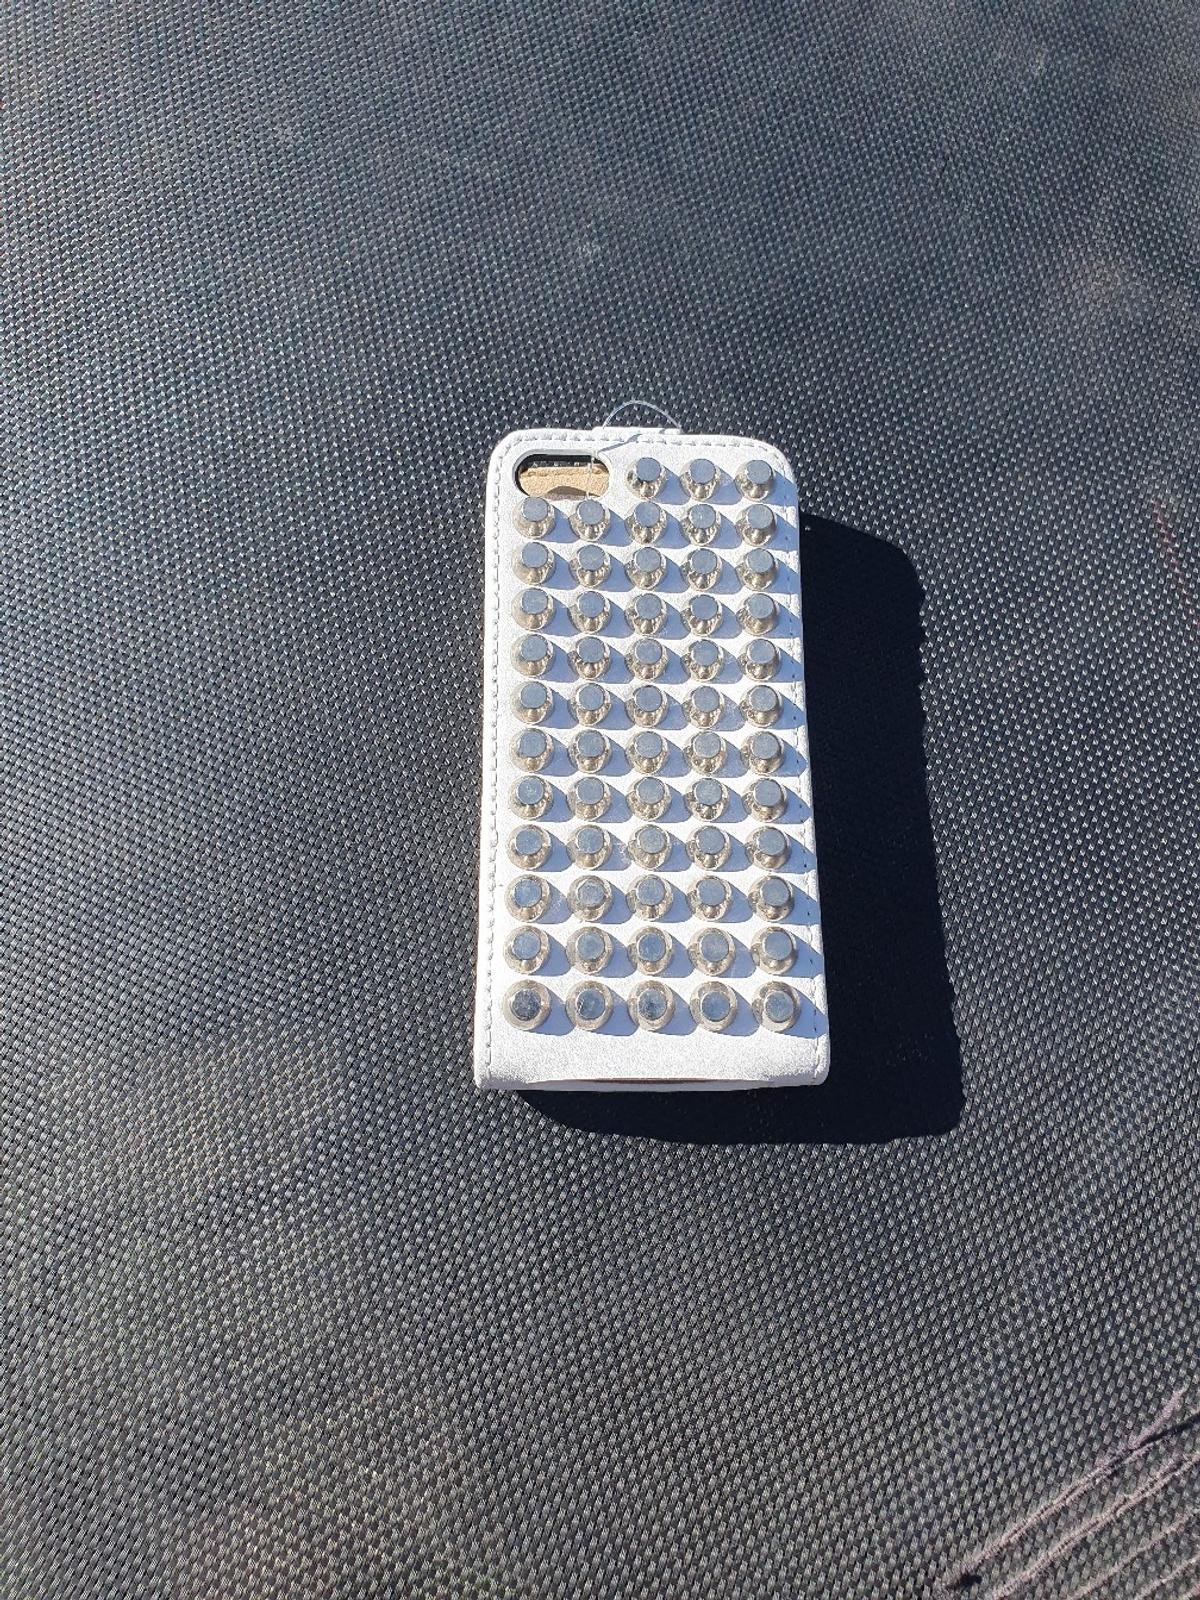 iPhone 5 leather flip cases black with silver studs ,white with silver studs ,also with gold studs . 700 + £10 per 100